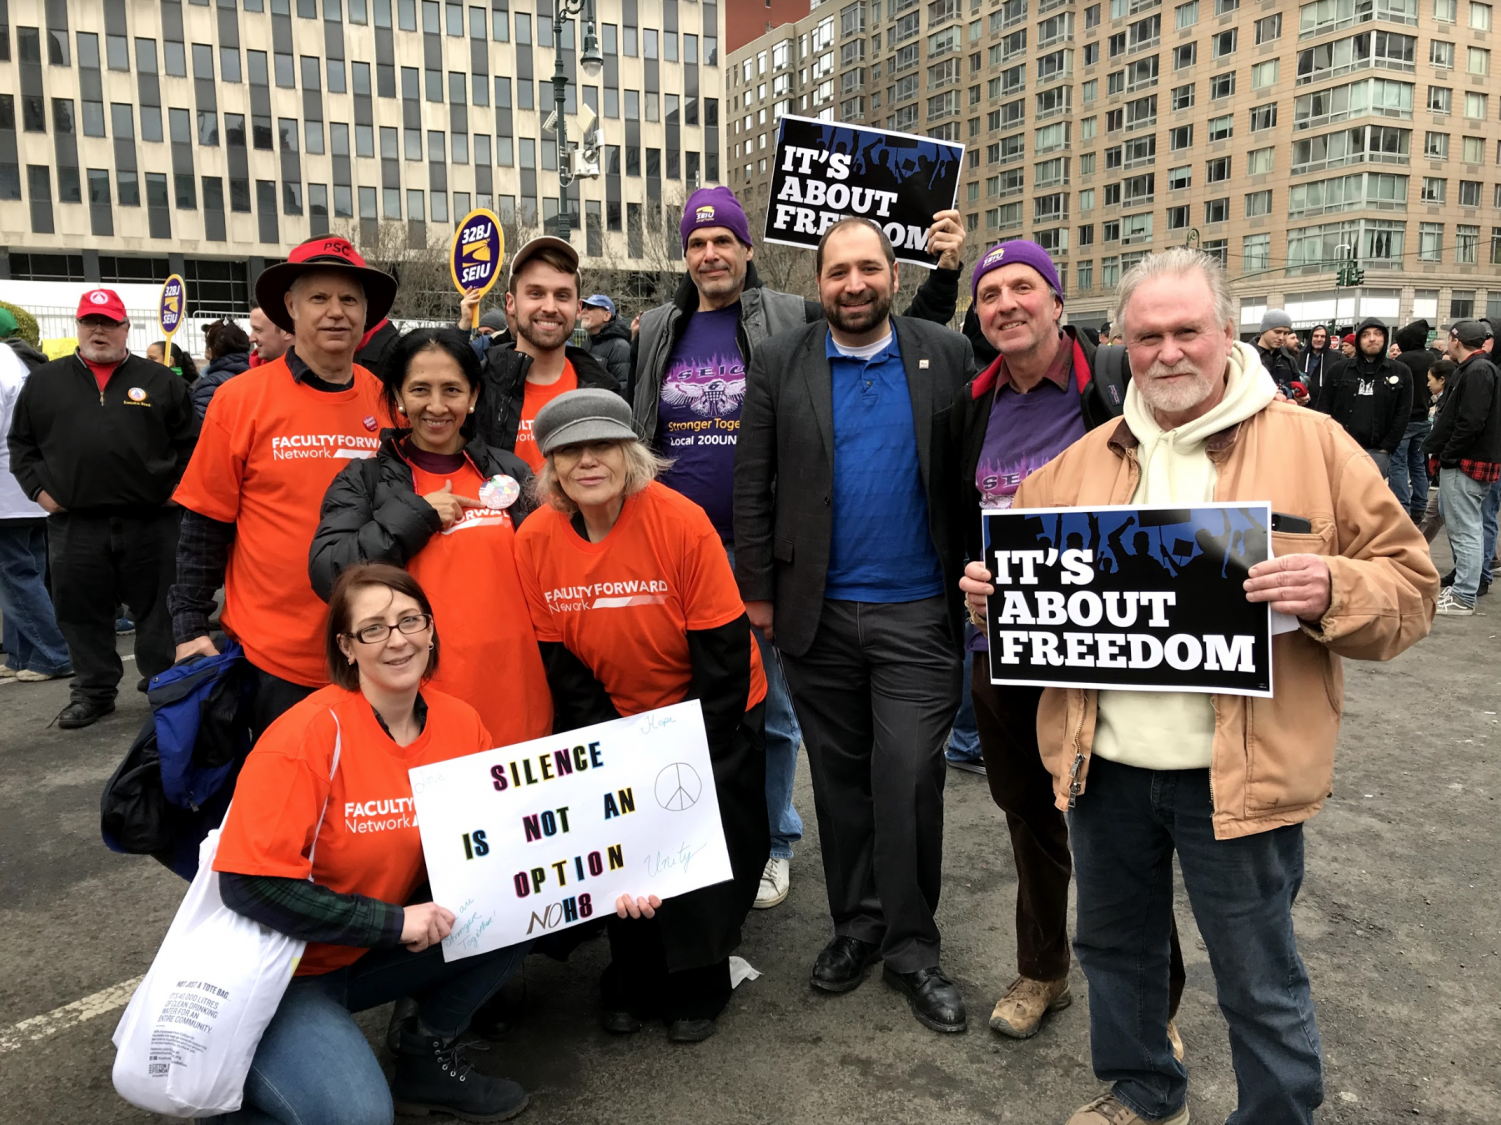 Fordham Faculty United members protesting at an event at the height of tensions during their campaign in April 2017.